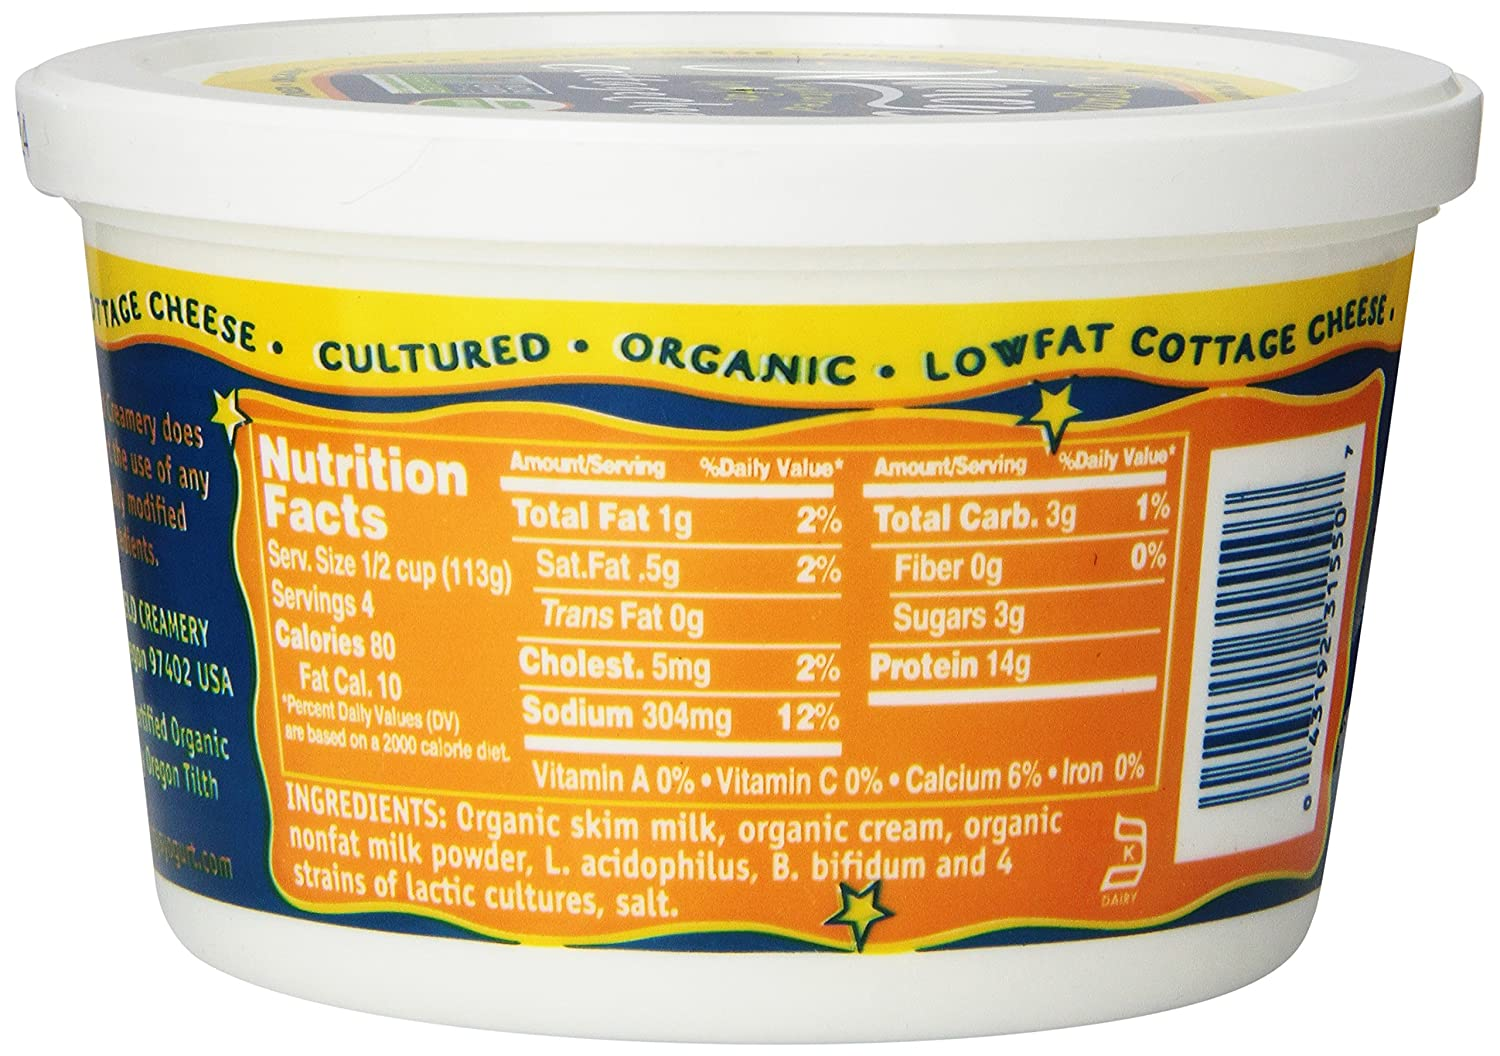 nancys cultured cottage cheese low fat 16 oz amazon com